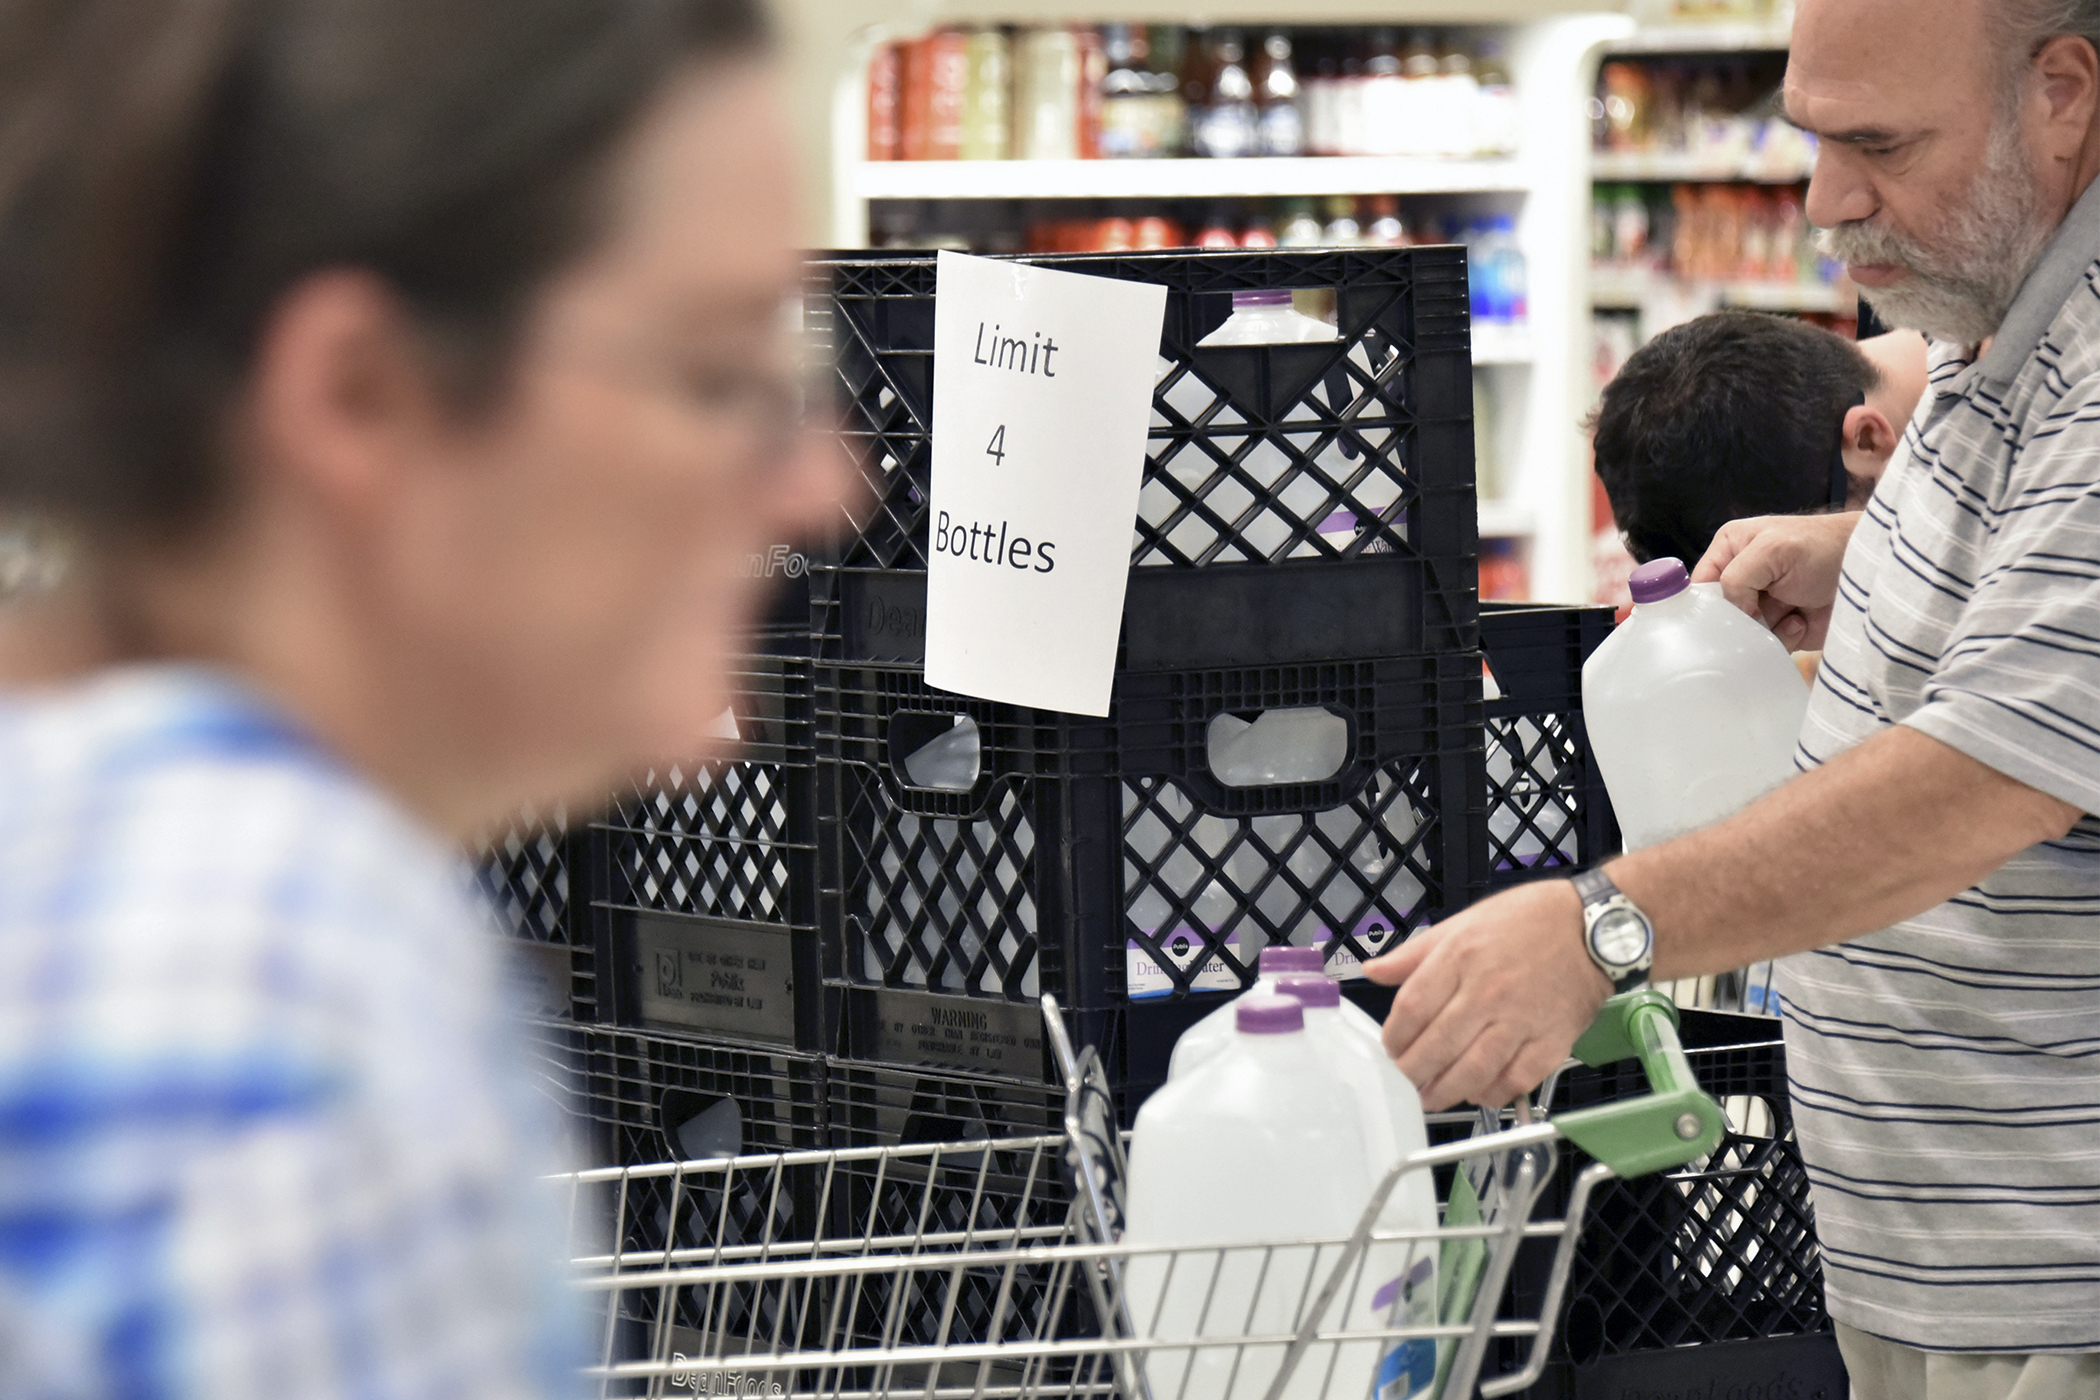 A customer grabs Publix Super Markets Inc. brand purified water bottles at the company's store ahead of Hurricane Matthew making landfall in West Palm Beach, Florida, on Oct. 5, 2016. Hurricane Matthew has thousands fleeing the U.S. Southeast where its expected to batter the coastline and threaten electricity supplies to more than 1 million people. Potential losses are seen as high as $15 billion.